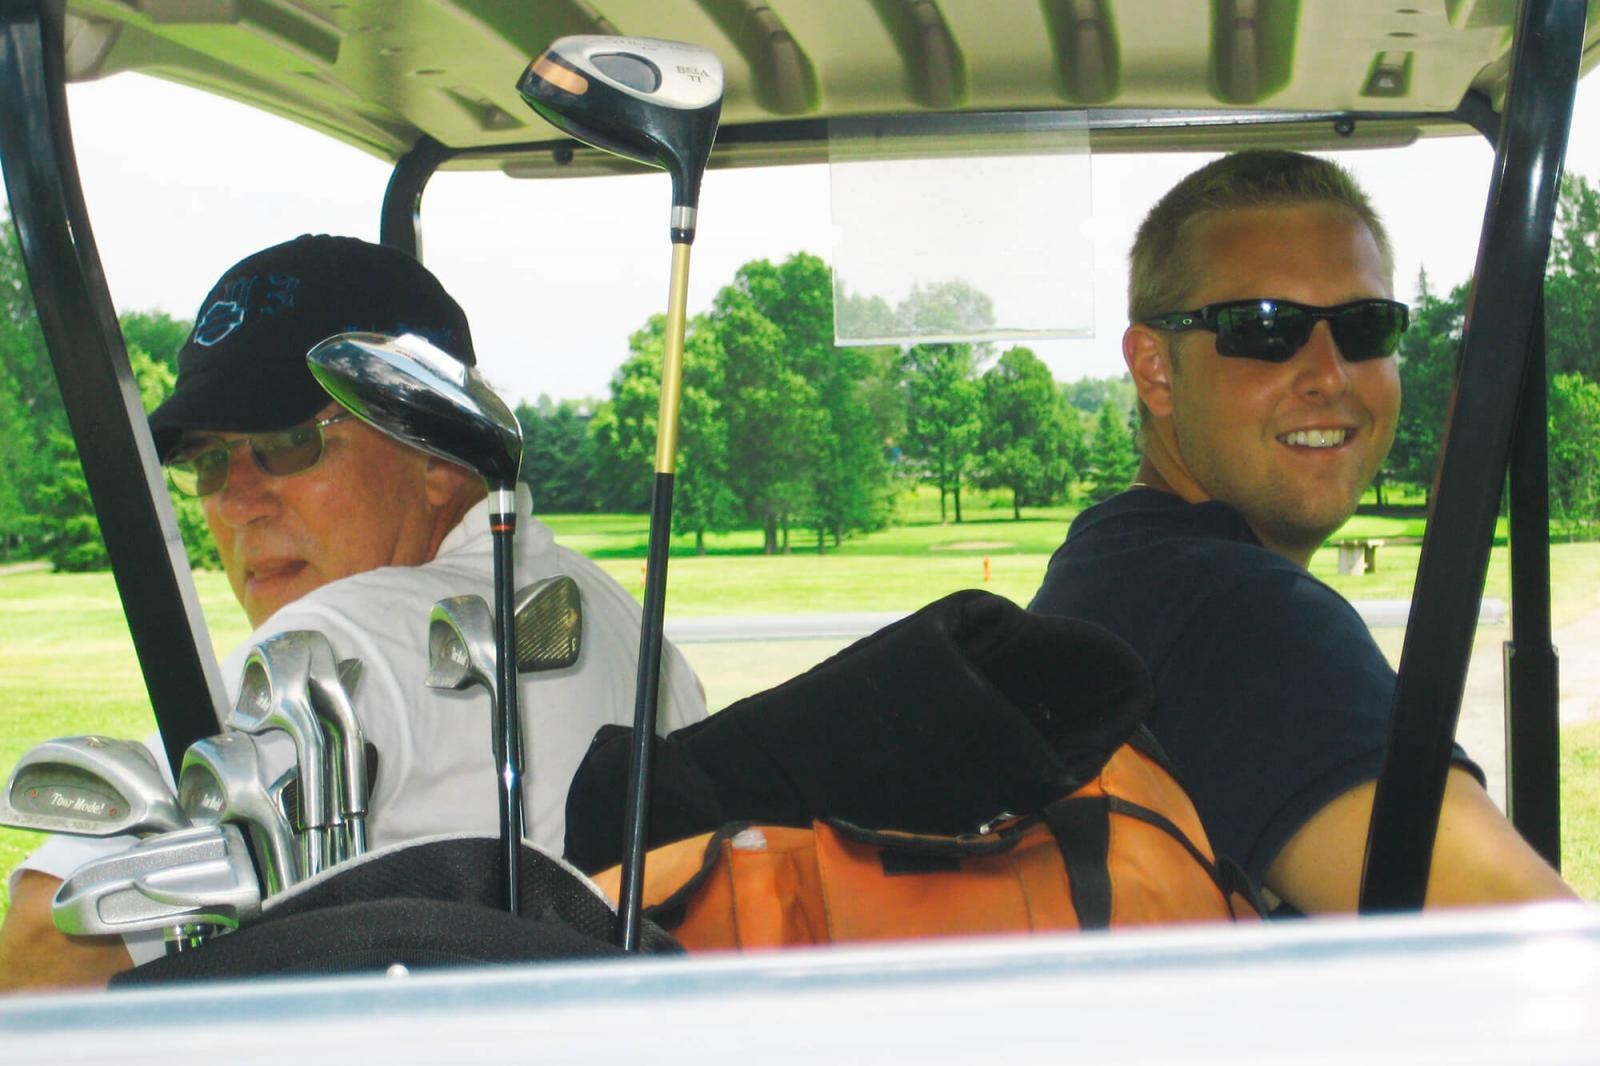 Eric Price, left, and Bill Cross of Thornbusch Landscaping Company enjoyed the day at the Upper Canada Golf Tournament on July 16.